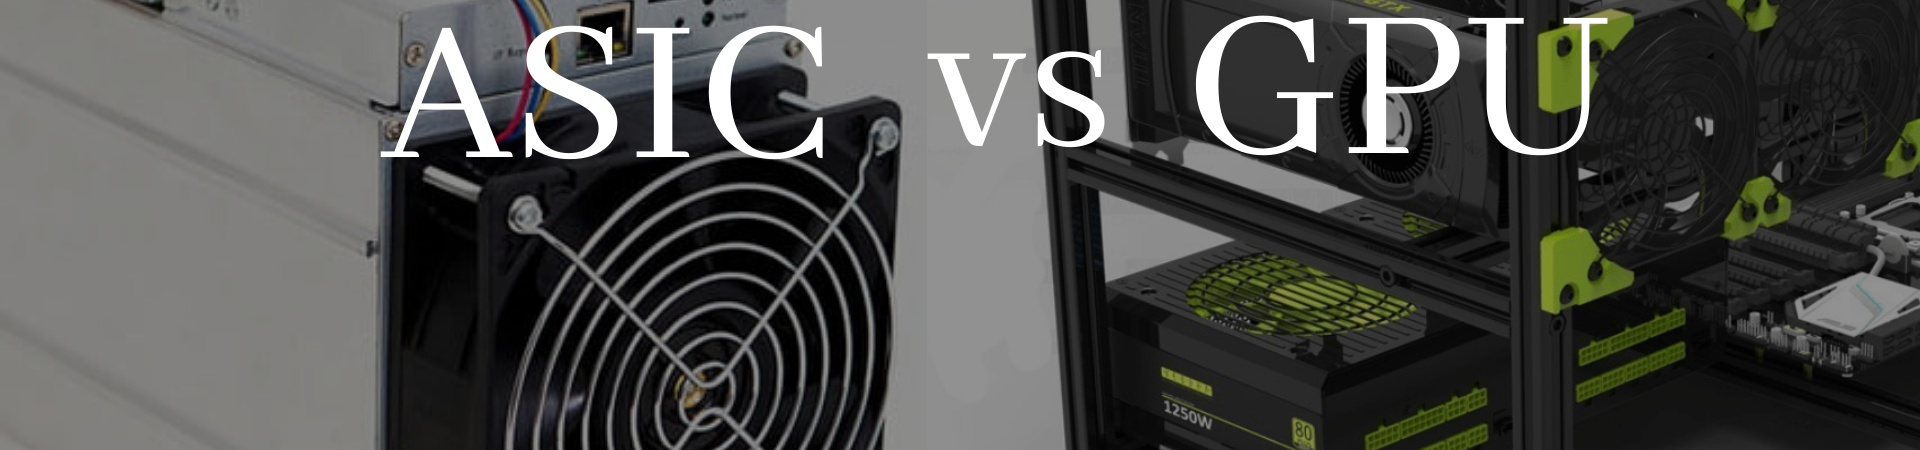 ASIC vs GPU: Which Crypto Mining Is Profitable?